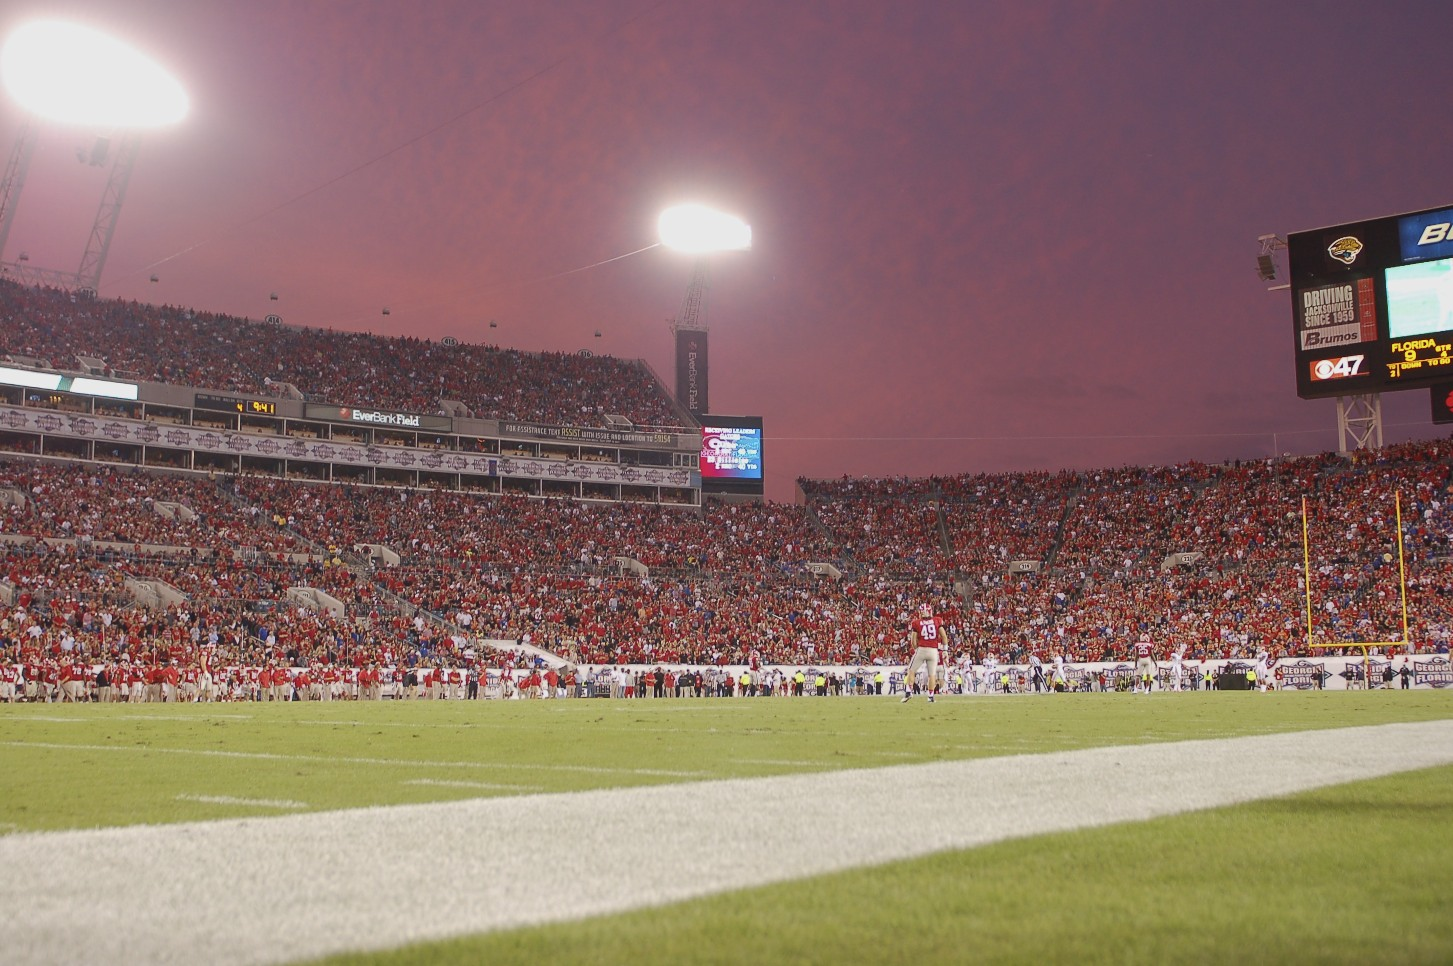 The EverBank Stadium in Jacksonville, Fla. as the sun sets on the Florida vs. Georgia game, Saturday, Oct. 27, 2012.